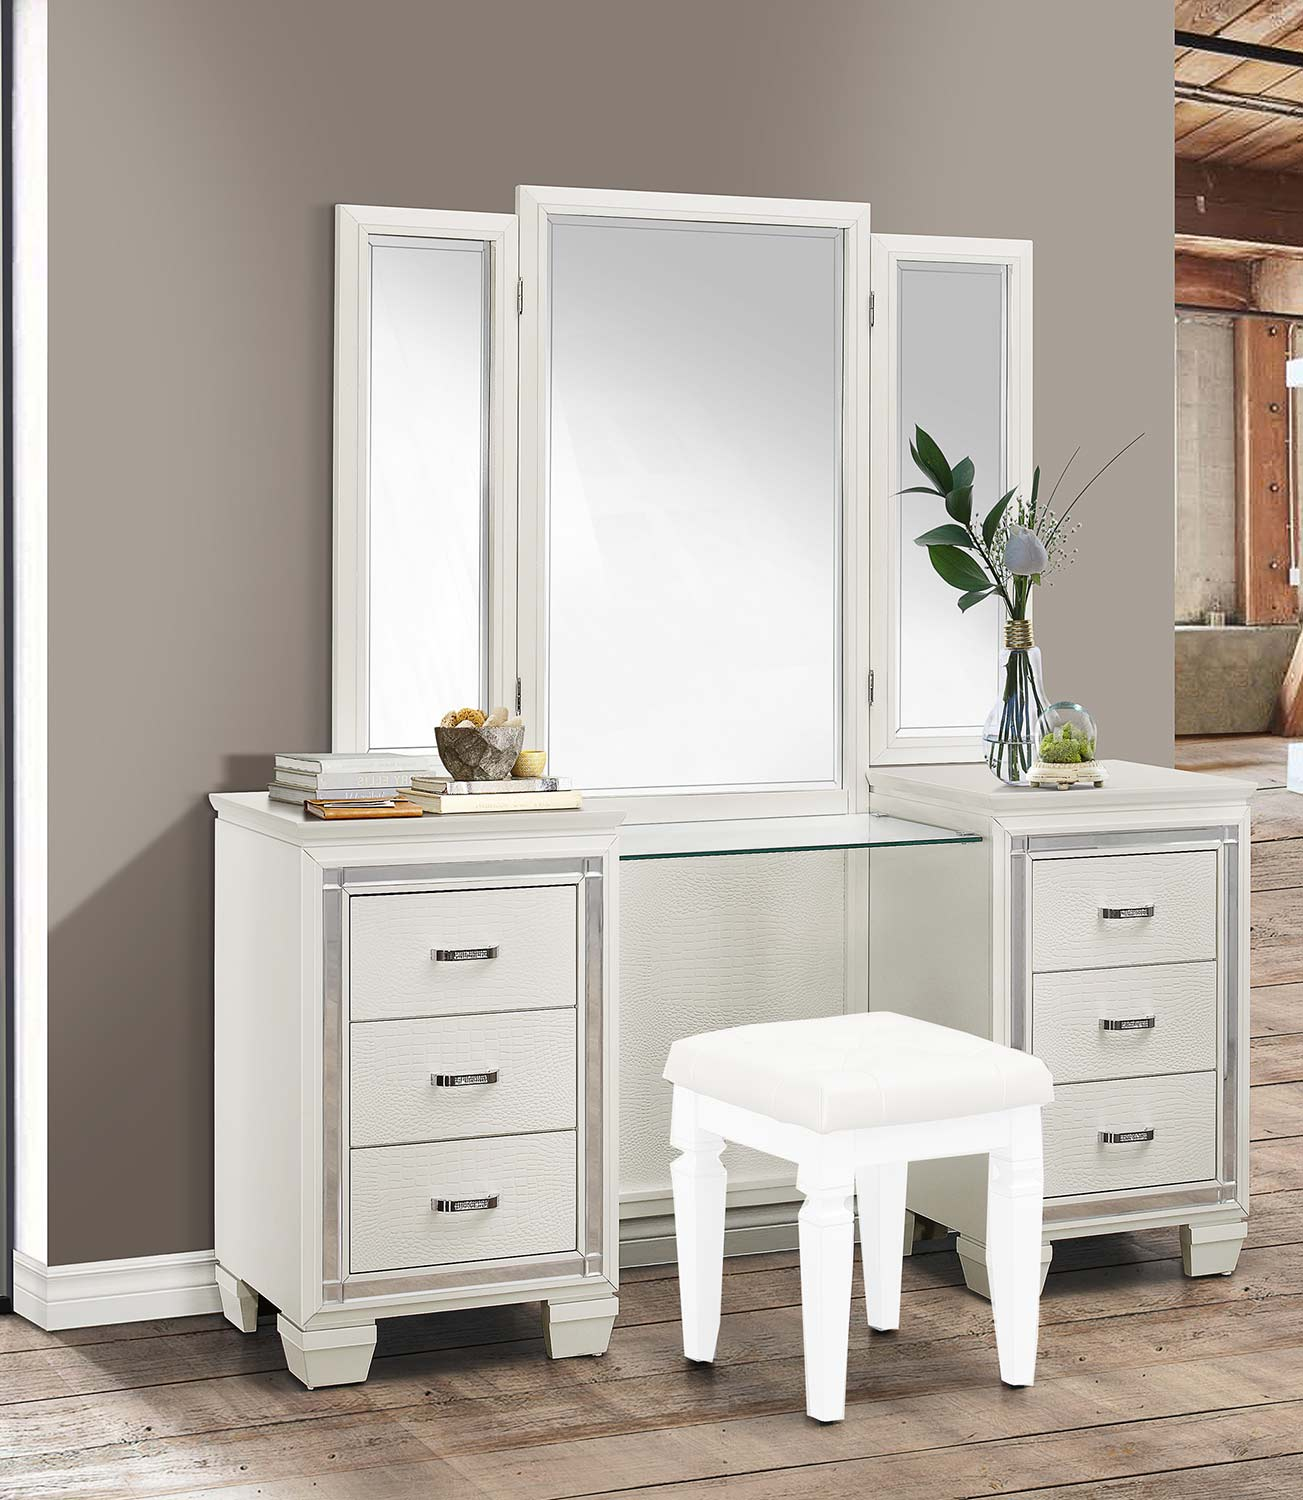 Homelegance Allura Vanity Dresser with Mirror - White